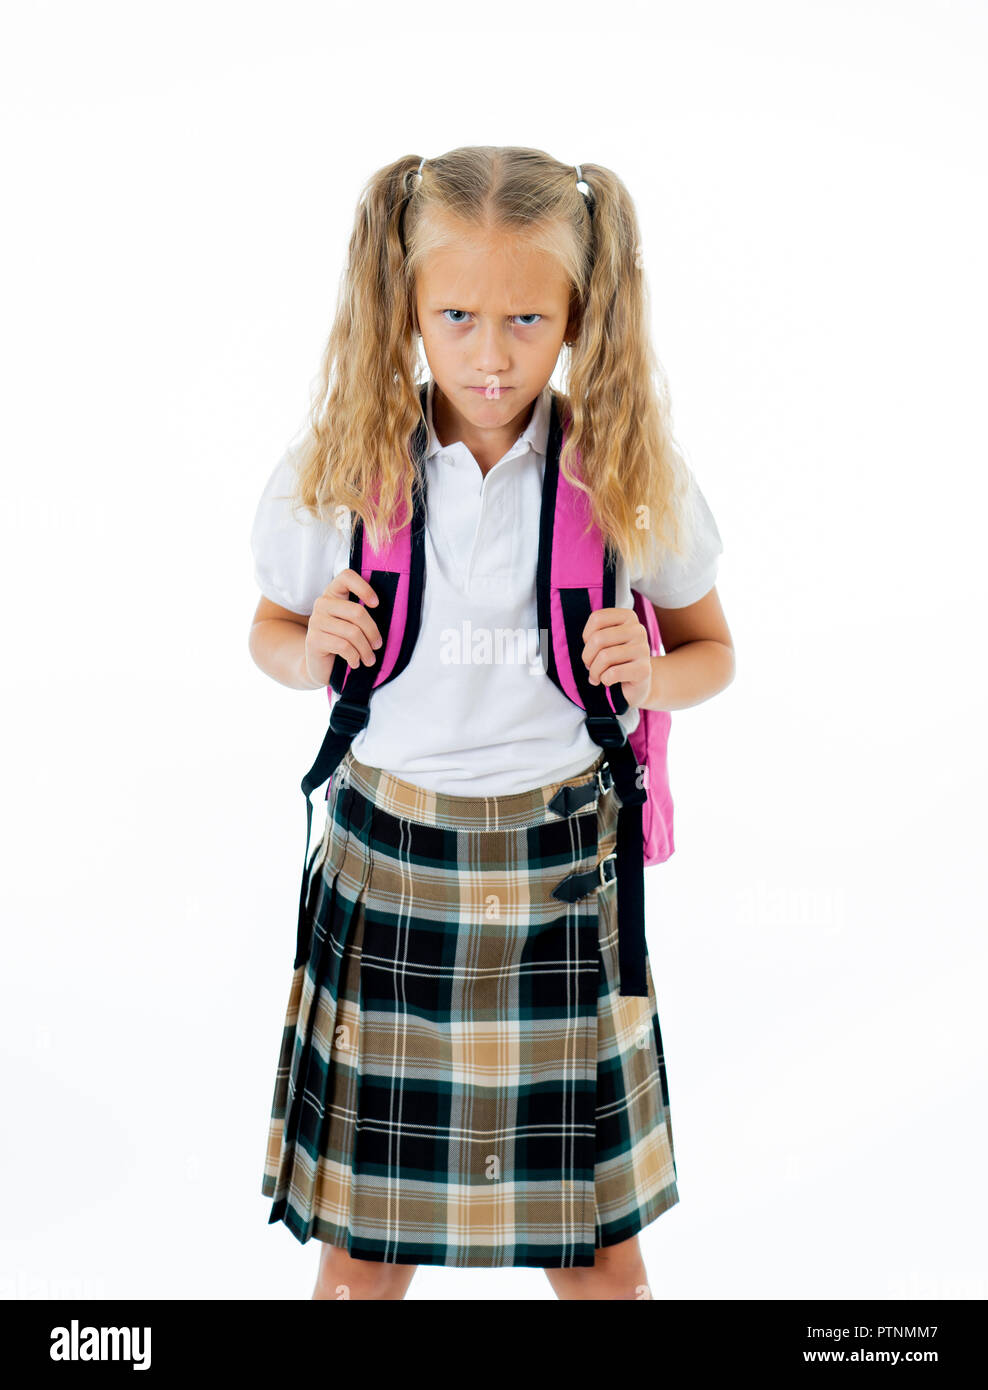 Sweet beautiful little girl in school uniform feeling angry and frustrated looking at the camera isolated on white background in homework learning dif - Stock Image